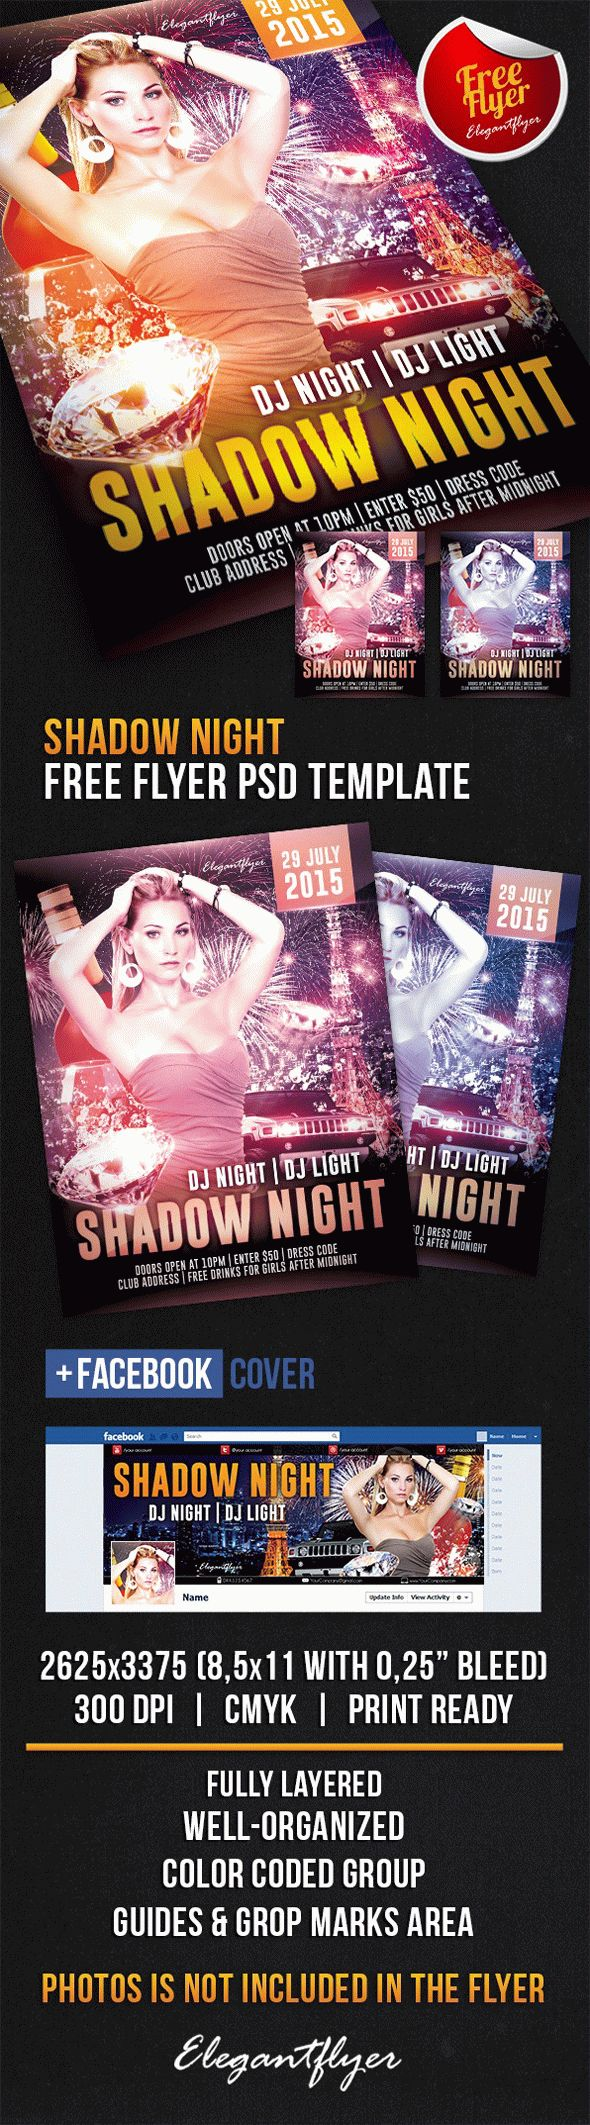 Shadow Night – Free Flyer PSD Template + Facebook Cover